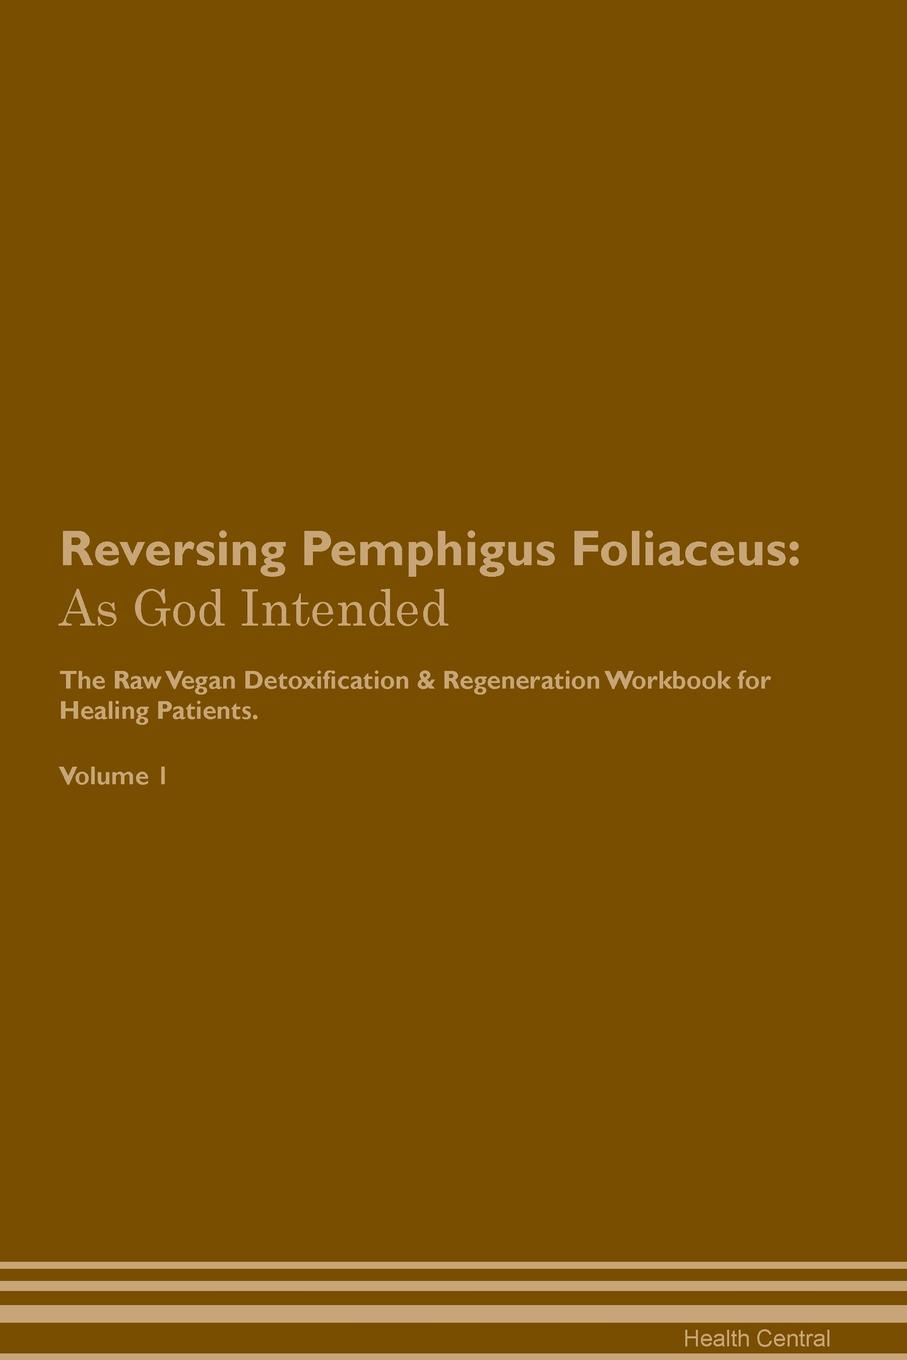 Reversing Pemphigus Foliaceus. As God Intended The Raw Vegan Plant-Based Detoxification & Regeneration Workbook for Healing Patients. Volume 1